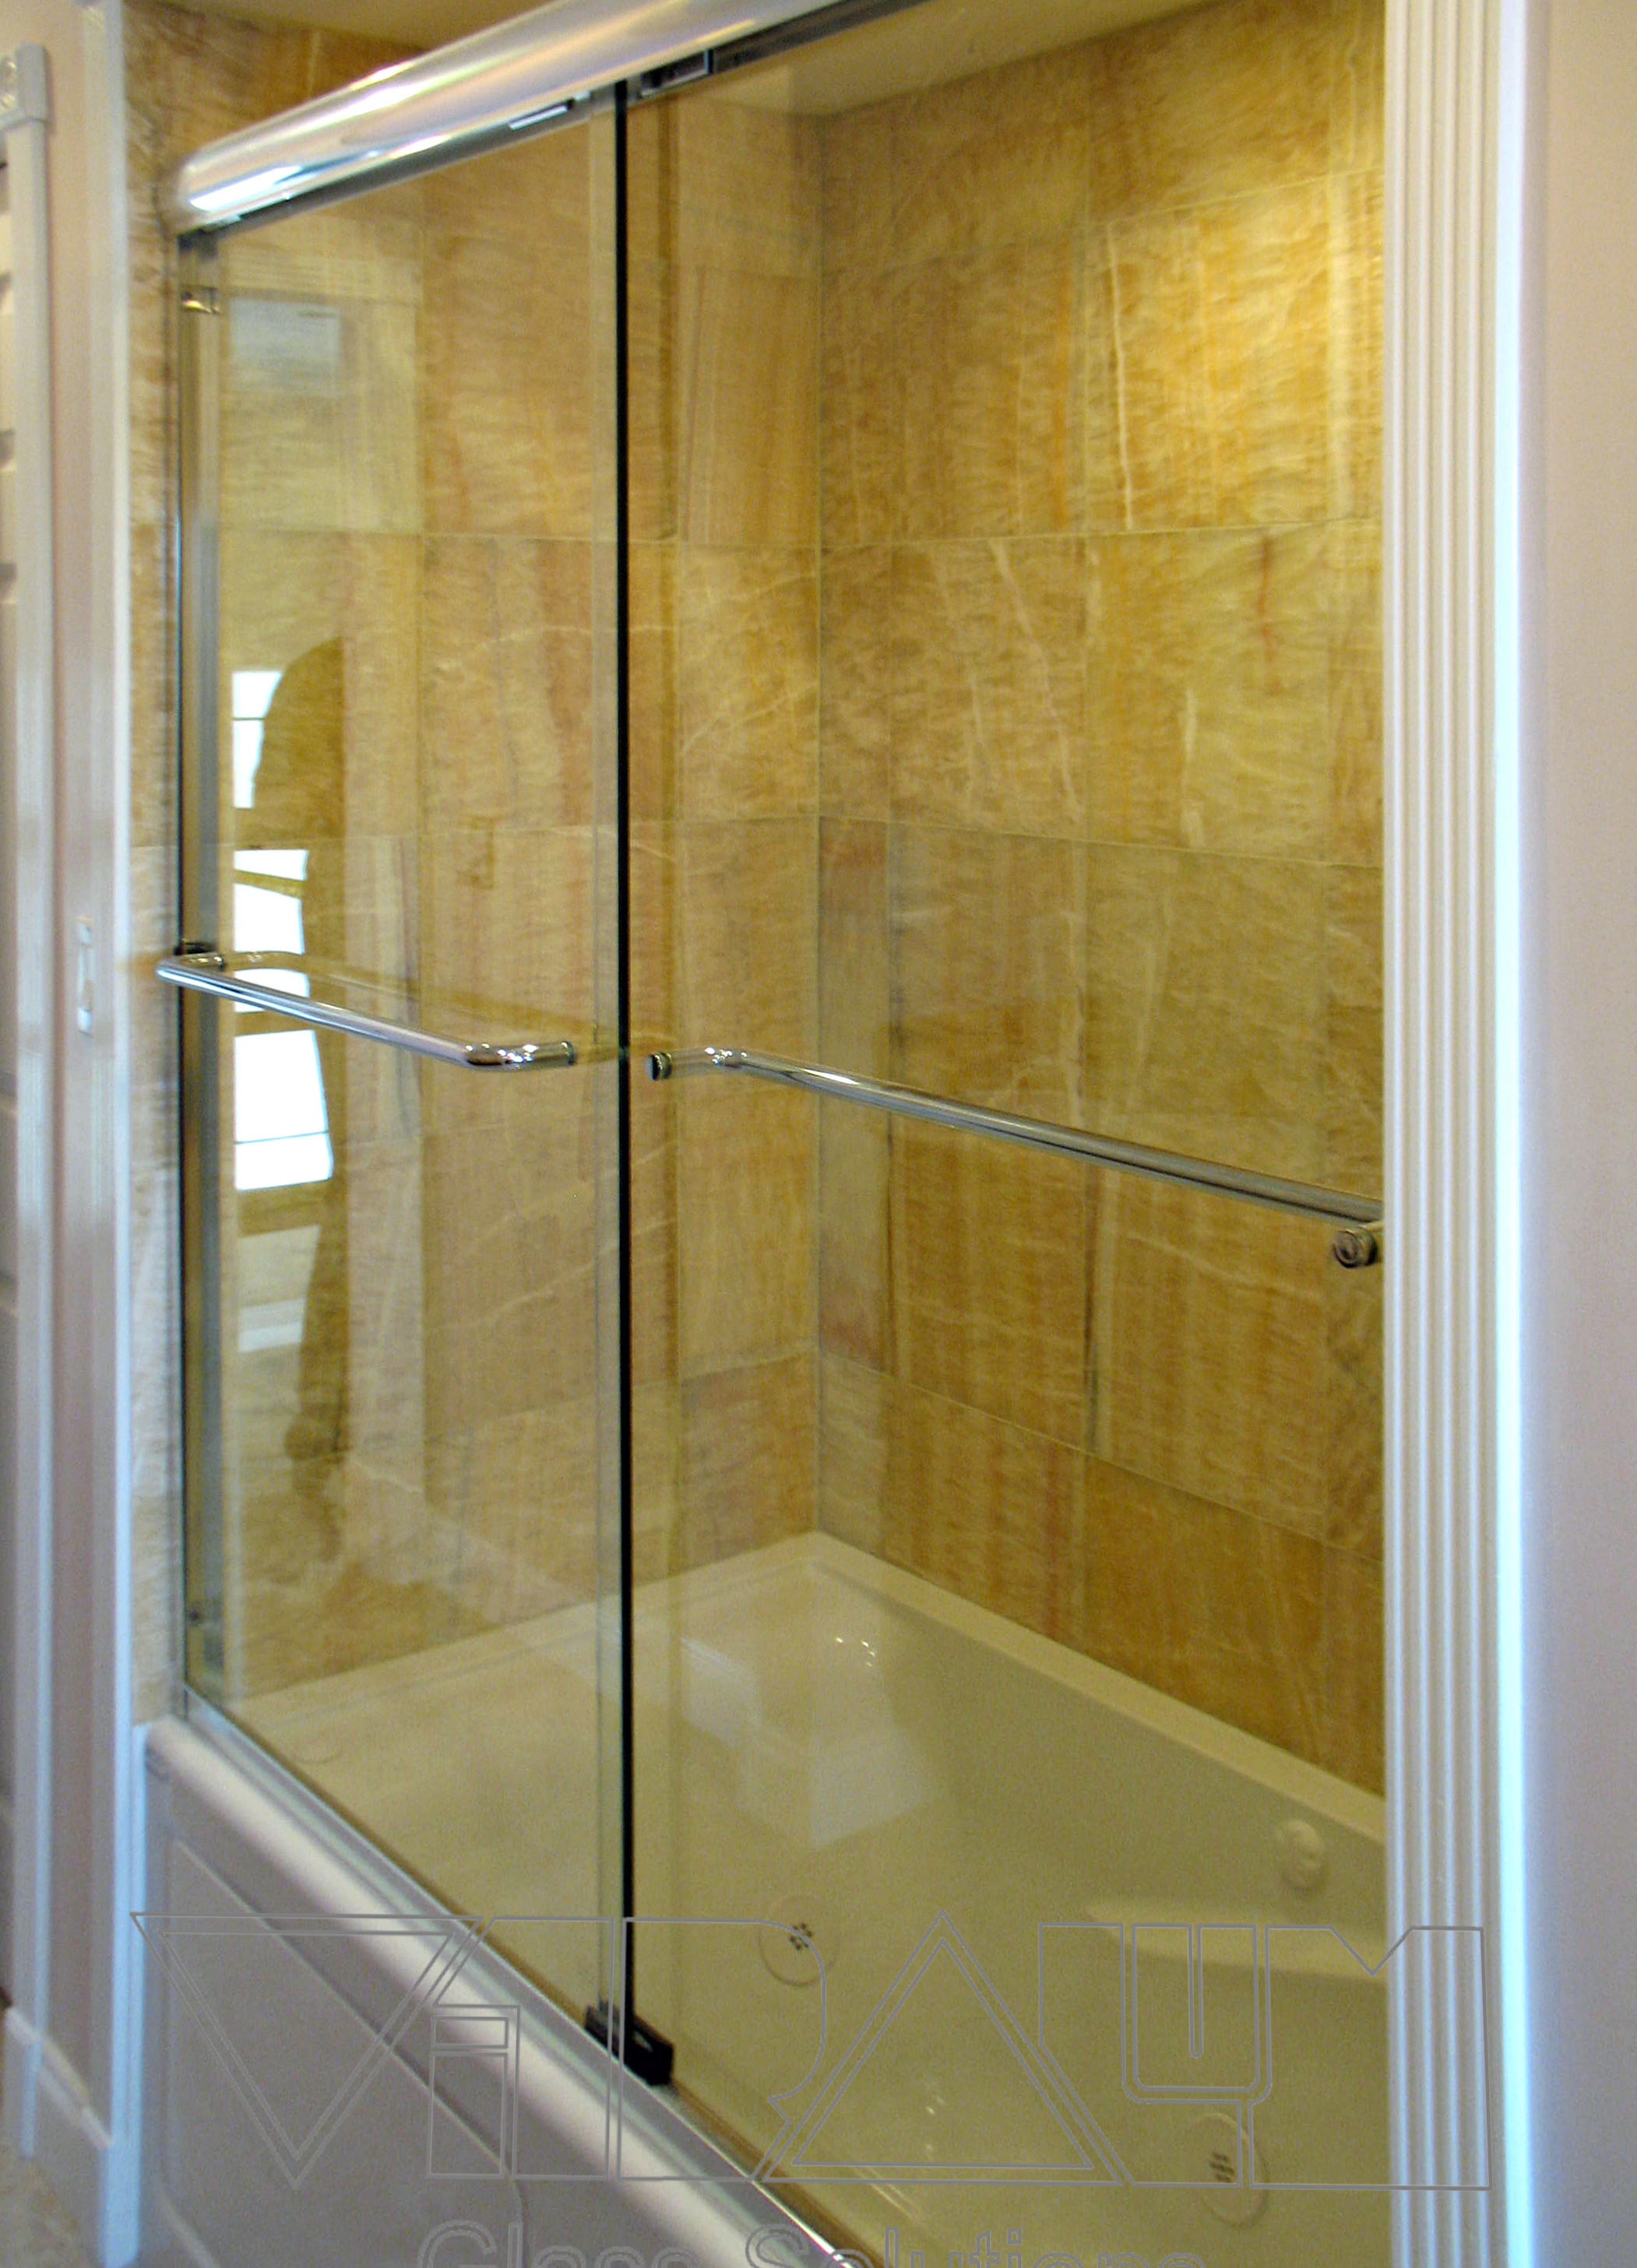 Frameless Shower DoorsCustom Bathroom DoorsHeavy GlassOviedoFL - Custom bathroom glass doors